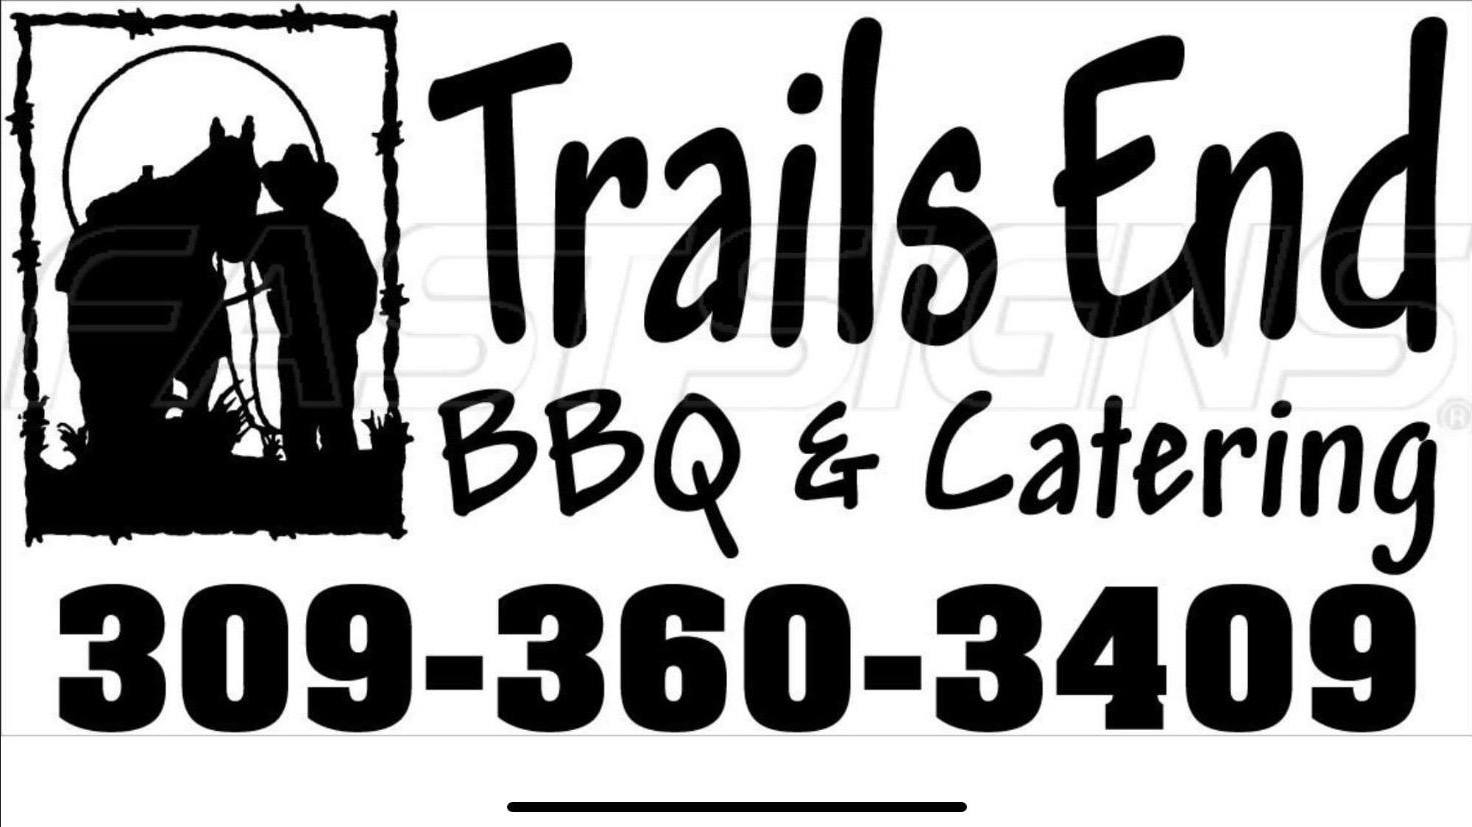 Trails End BBQ and Catering